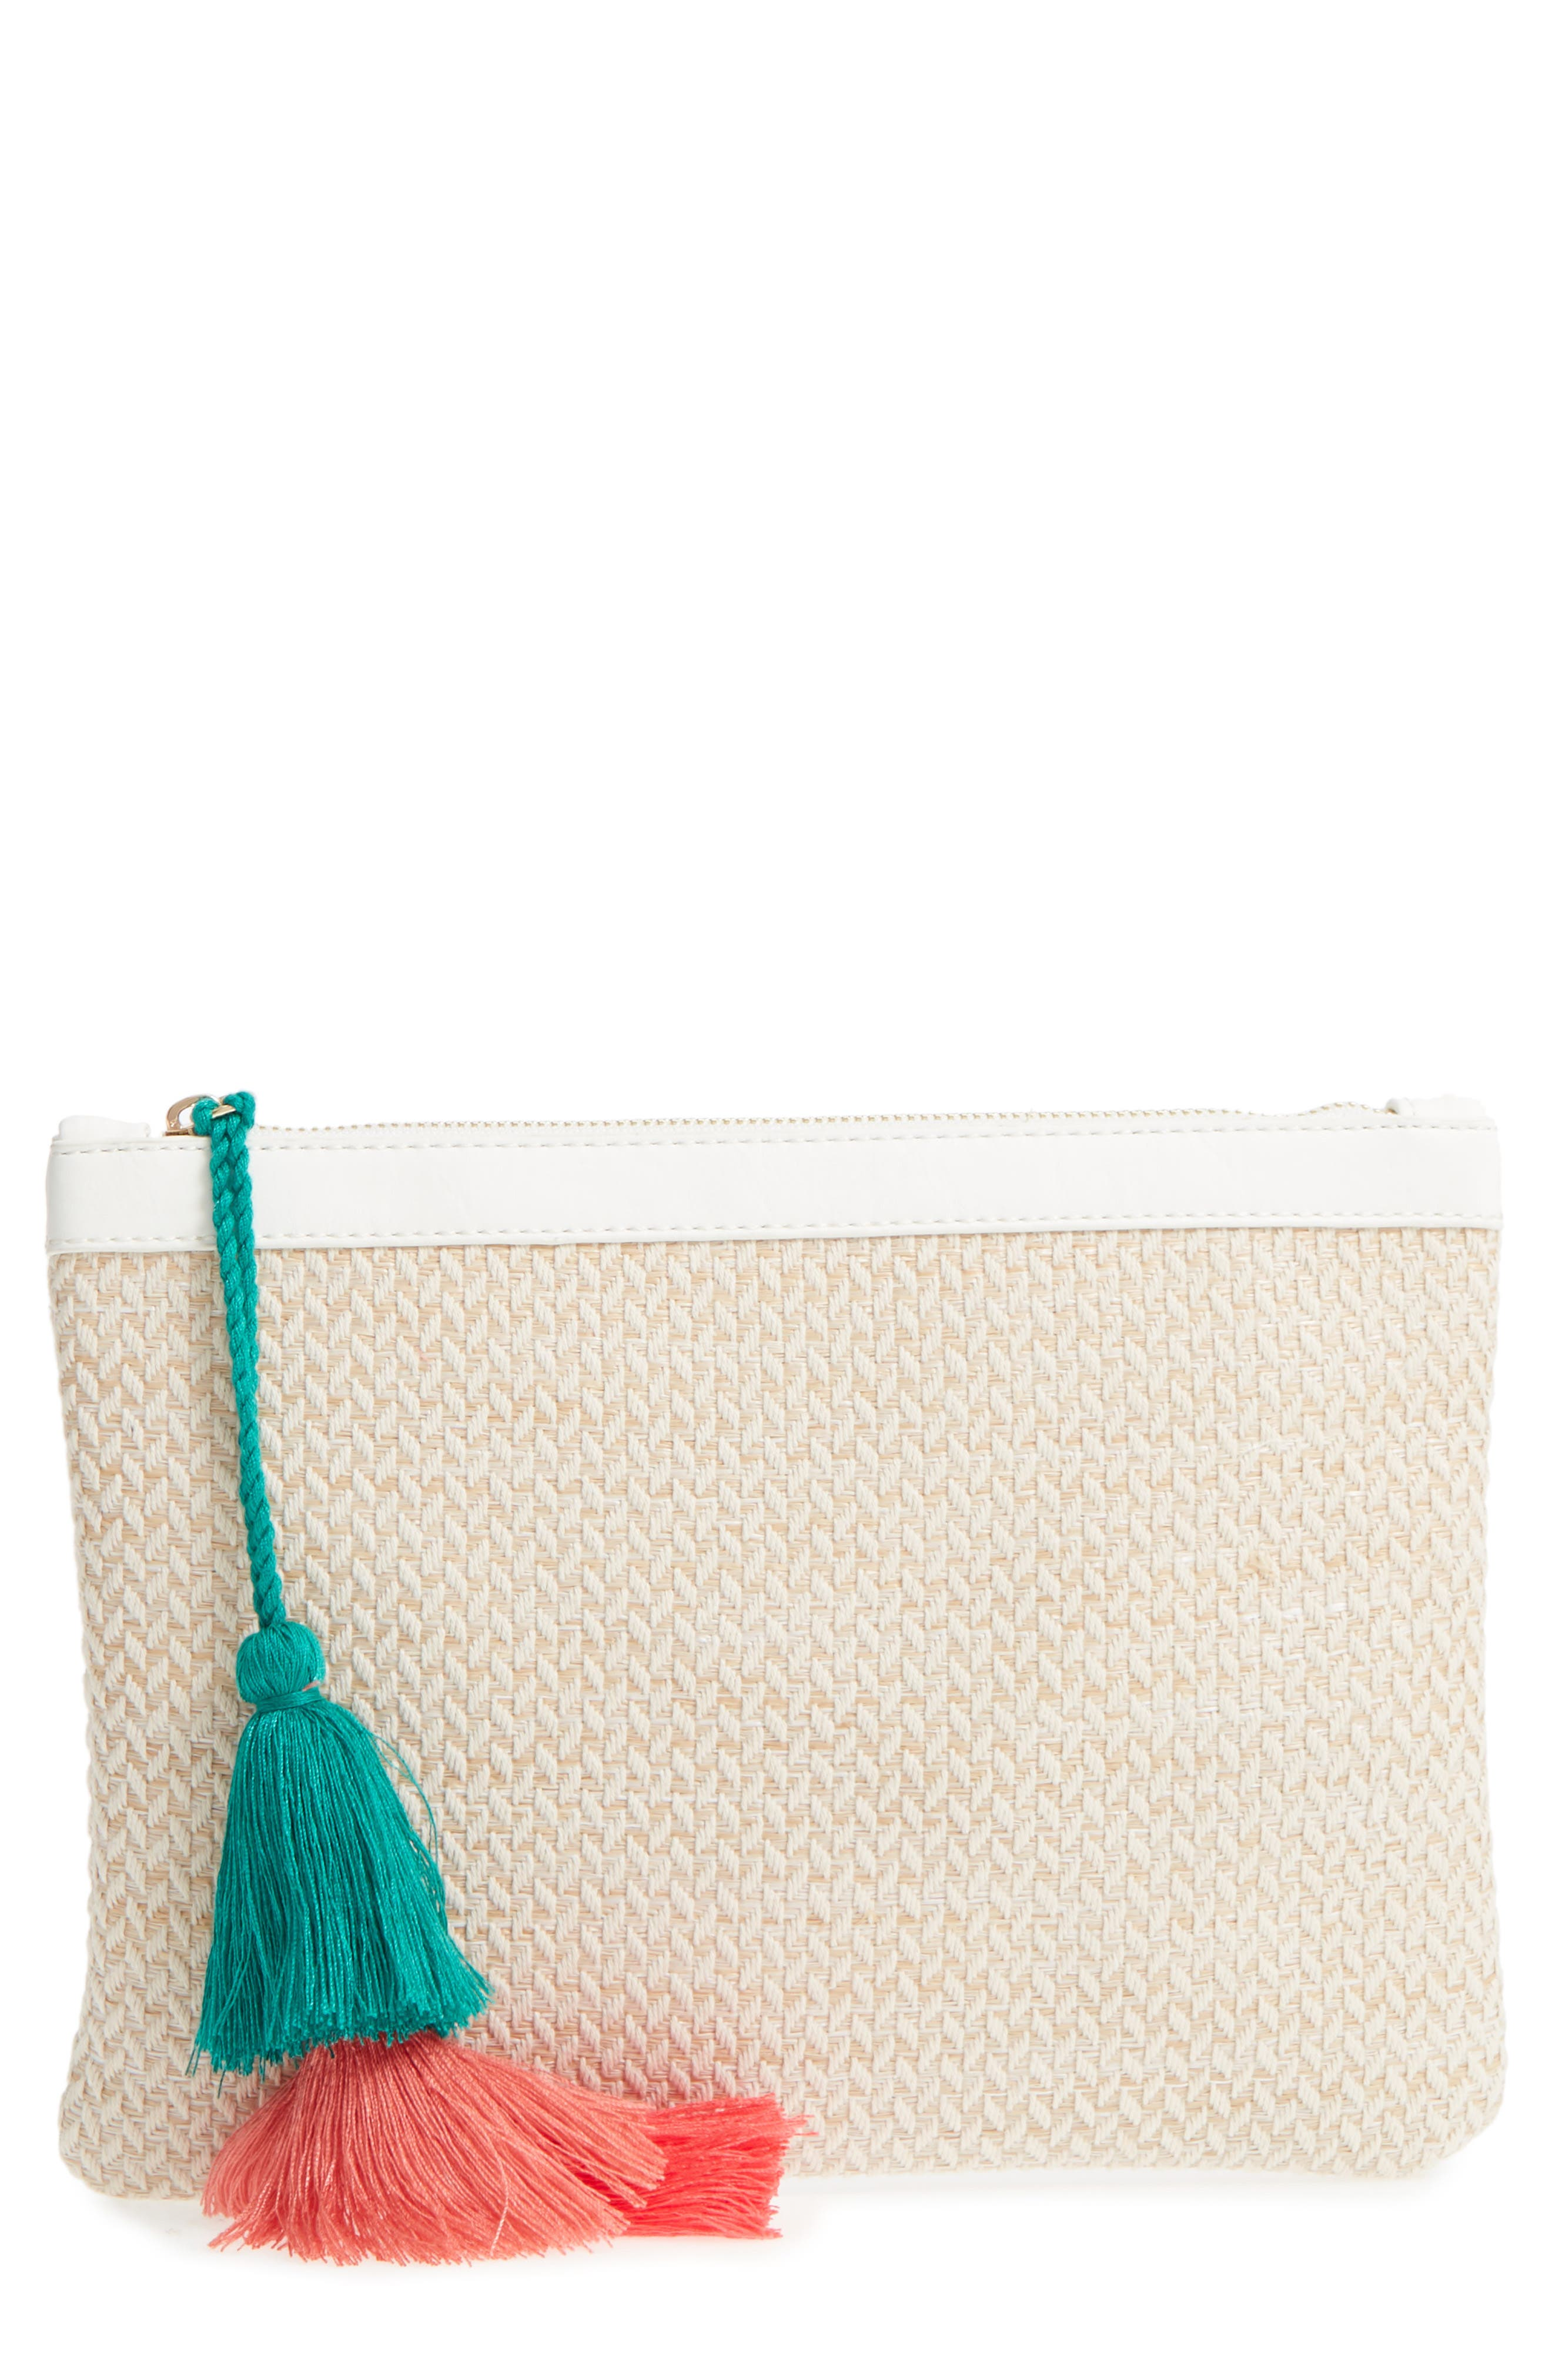 Tasseled Fabric Zip Pouch,                             Main thumbnail 1, color,                             White/ Natural